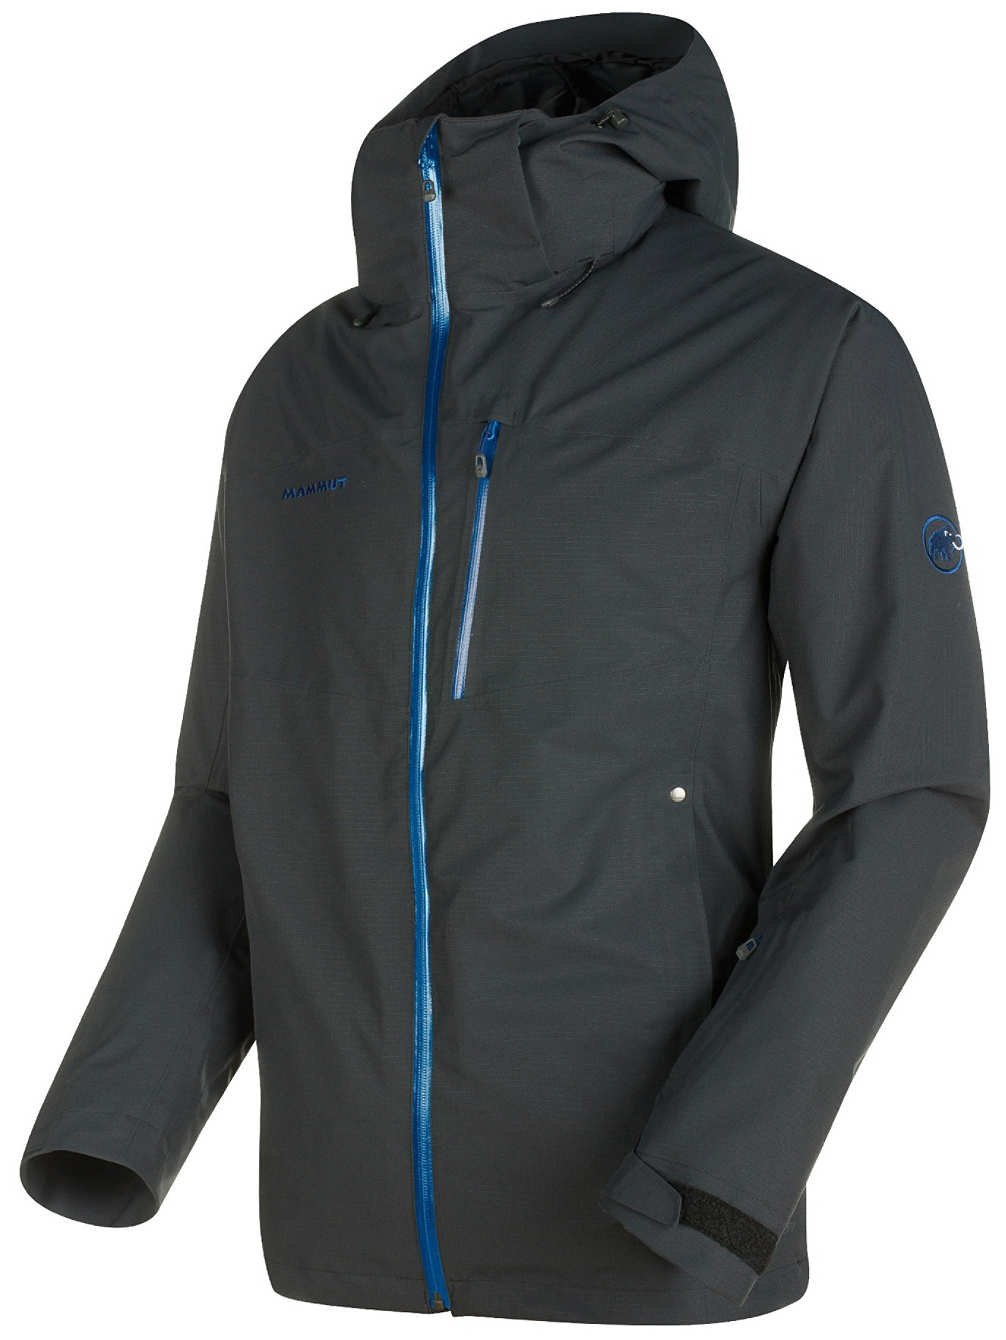 CRUISE HS THERMO JACKET